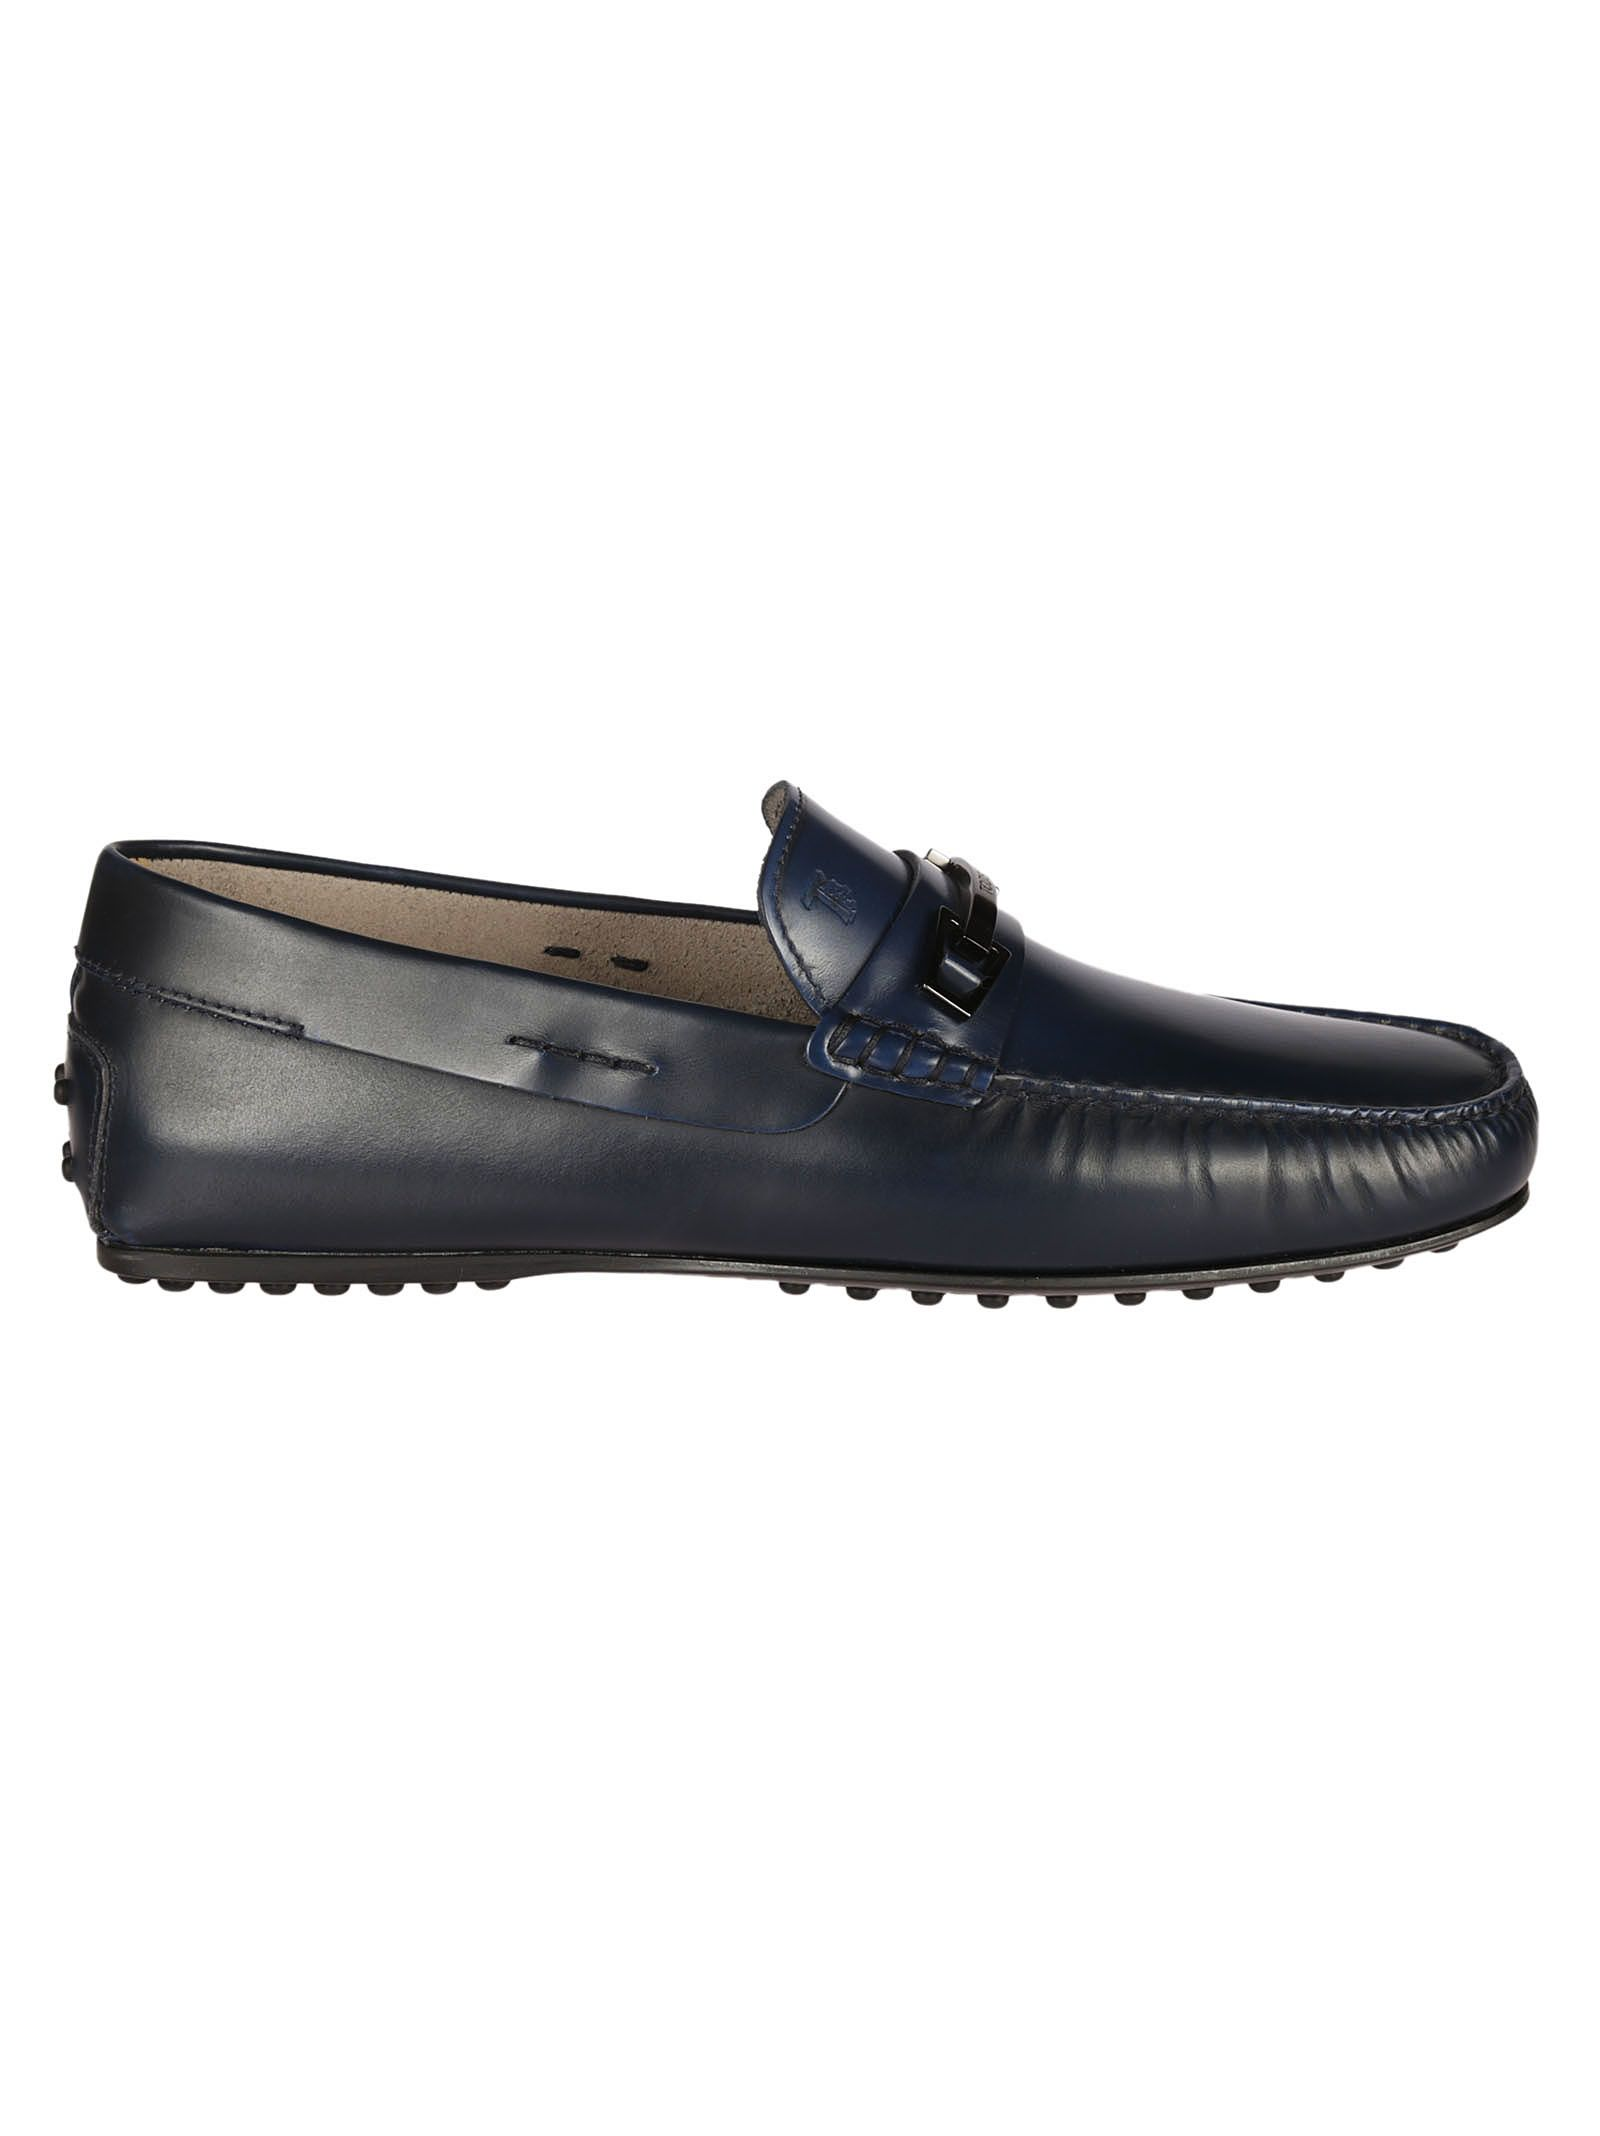 Tod's - Tod's Gommino Driving Shoes - Blue, Men's Other Shoes | Italist